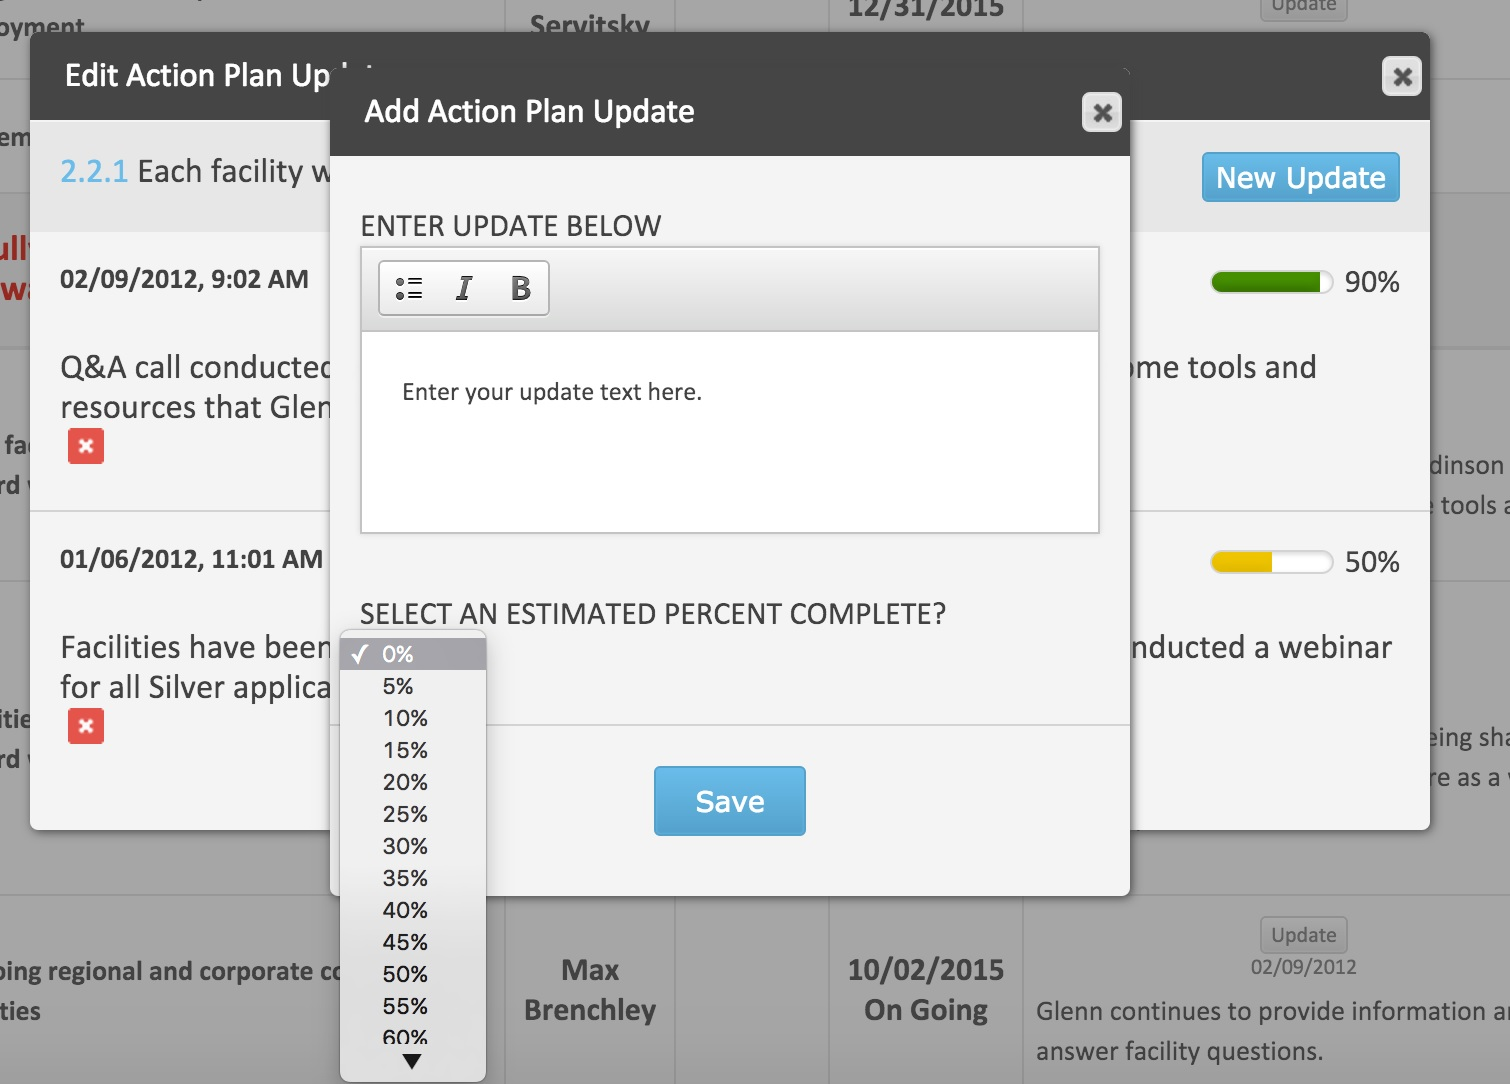 Add action plan update (percent complete)